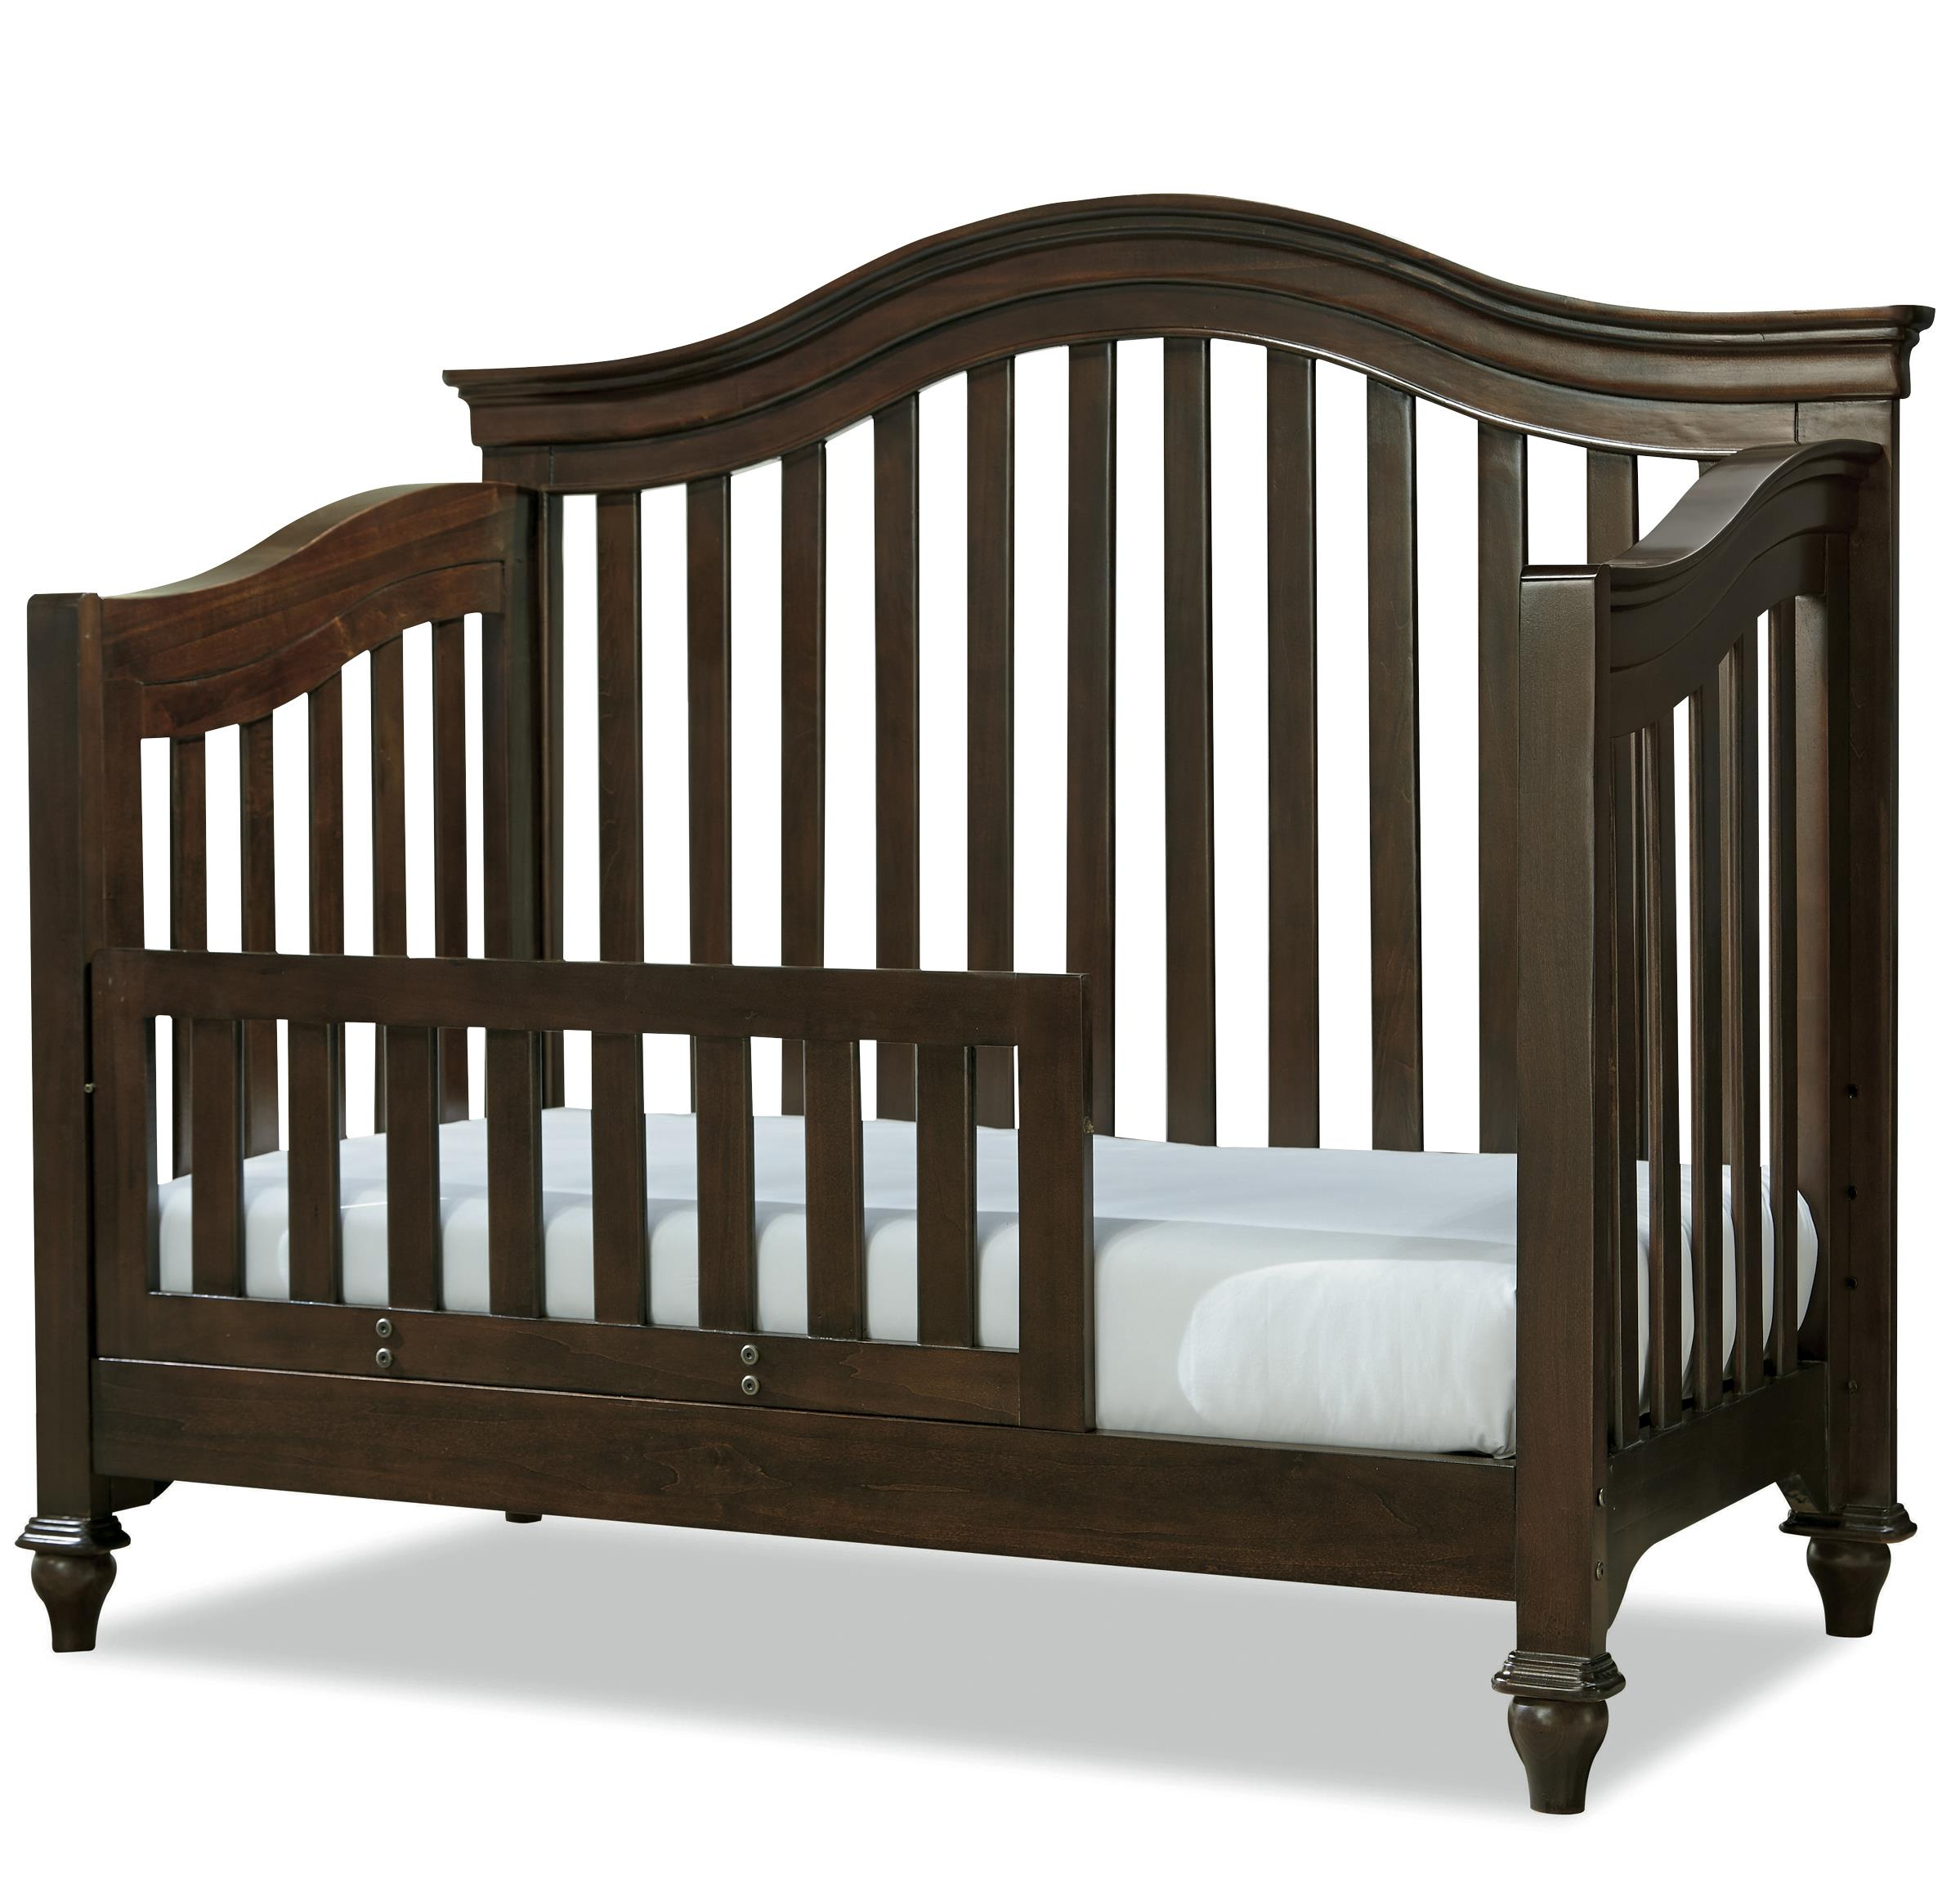 Smartstuff Classics 4.0 Convertible Crib with Toddler Rail - Item Number: 1312310+305